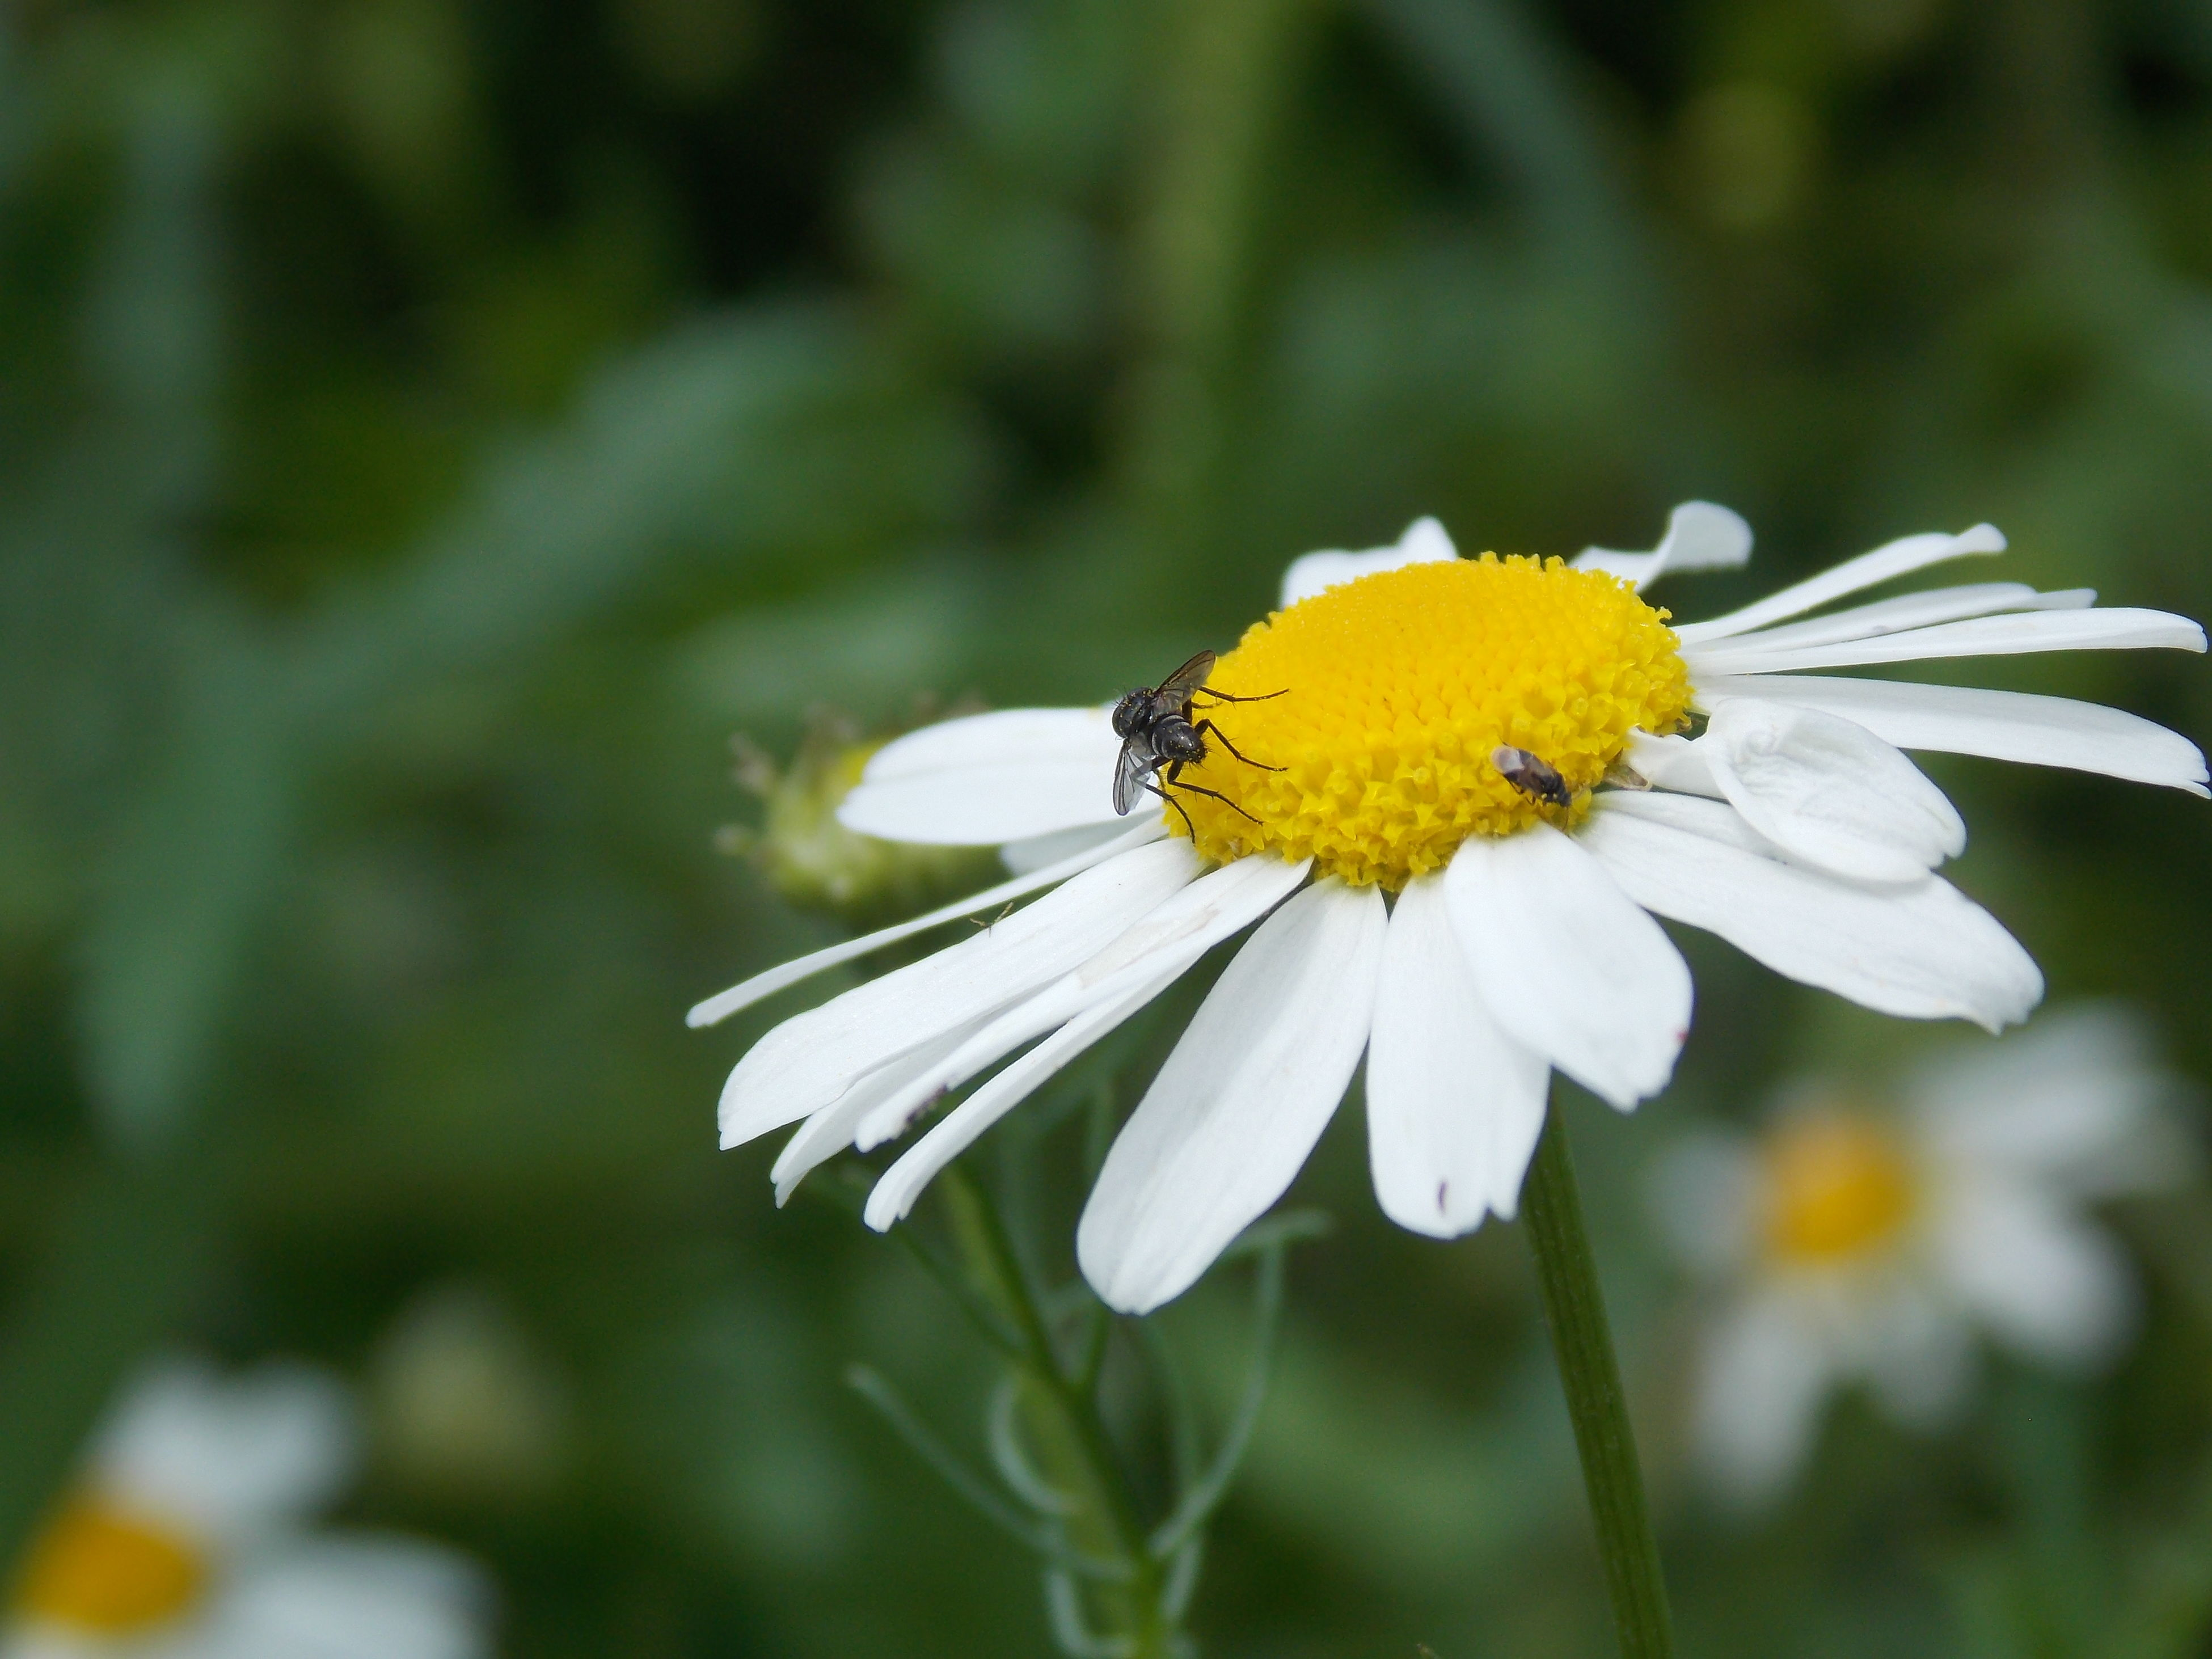 flower, petal, freshness, fragility, flower head, yellow, pollen, close-up, focus on foreground, white color, growth, beauty in nature, insect, one animal, nature, single flower, blooming, animal themes, daisy, plant